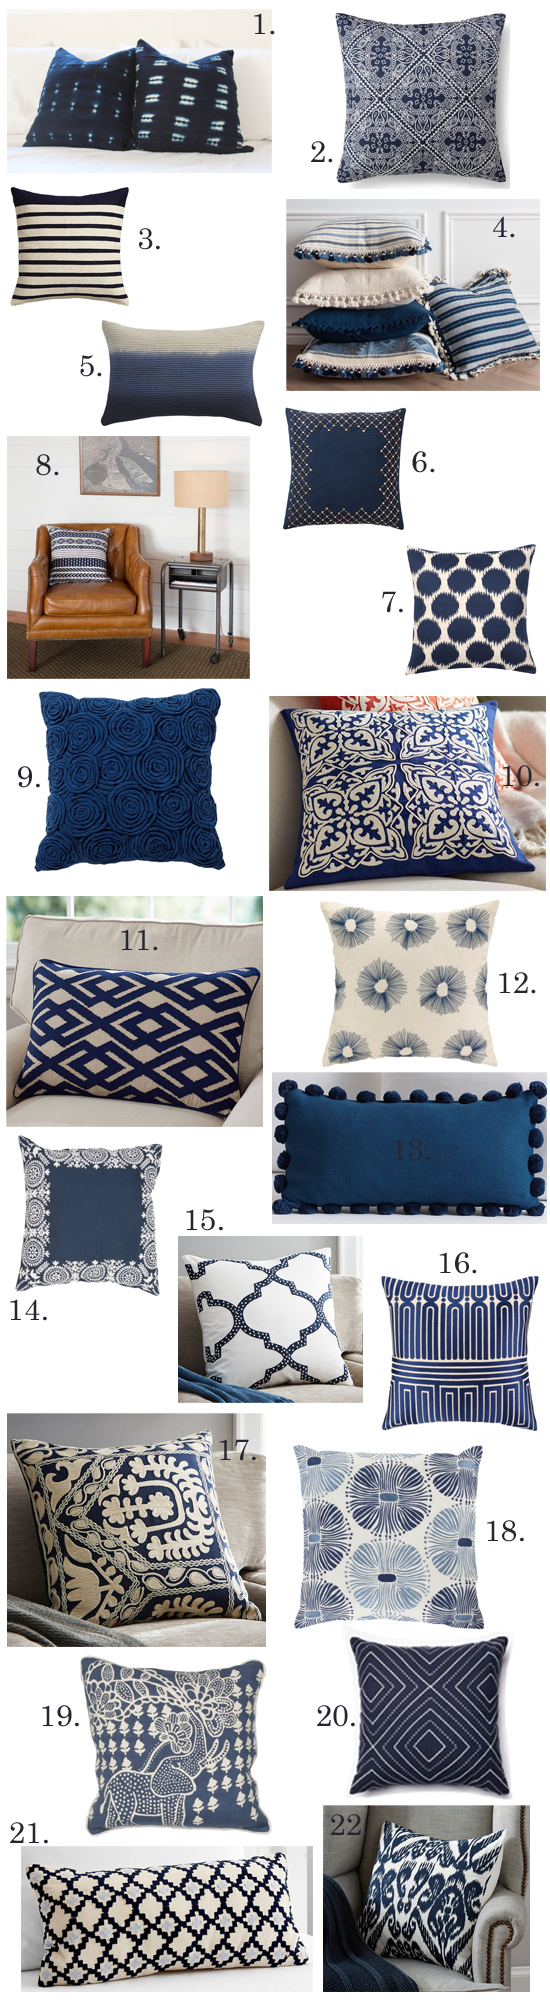 Building A Dream House Navy Throw Pillows Master Bedroom Makeover Blue Throws And Master Bedroom